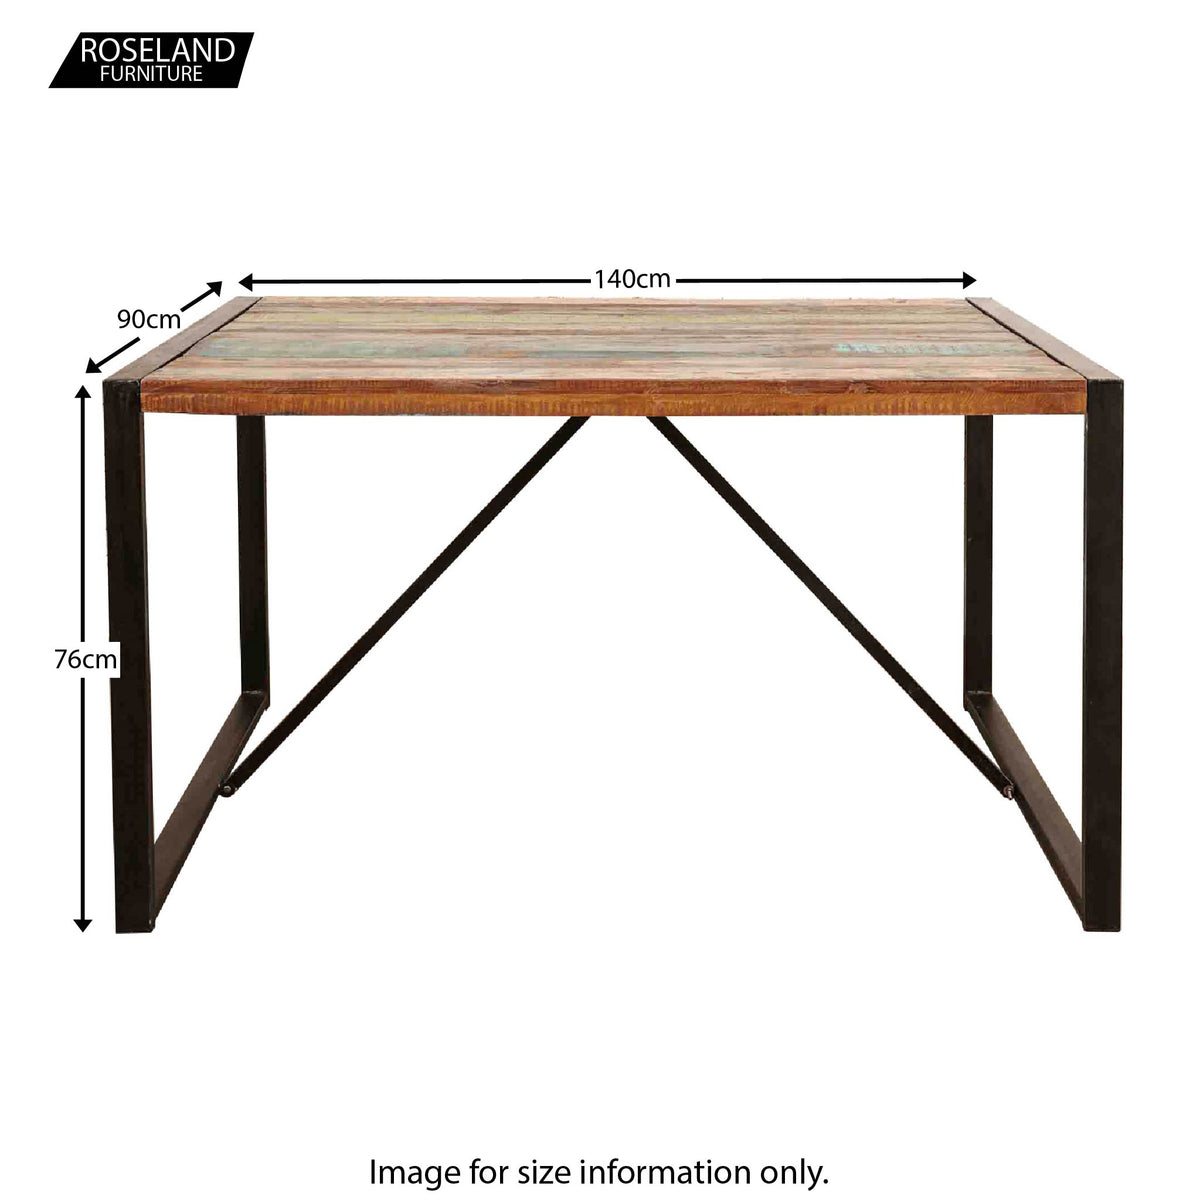 Urban Chic Small Dining Table - Size Guide